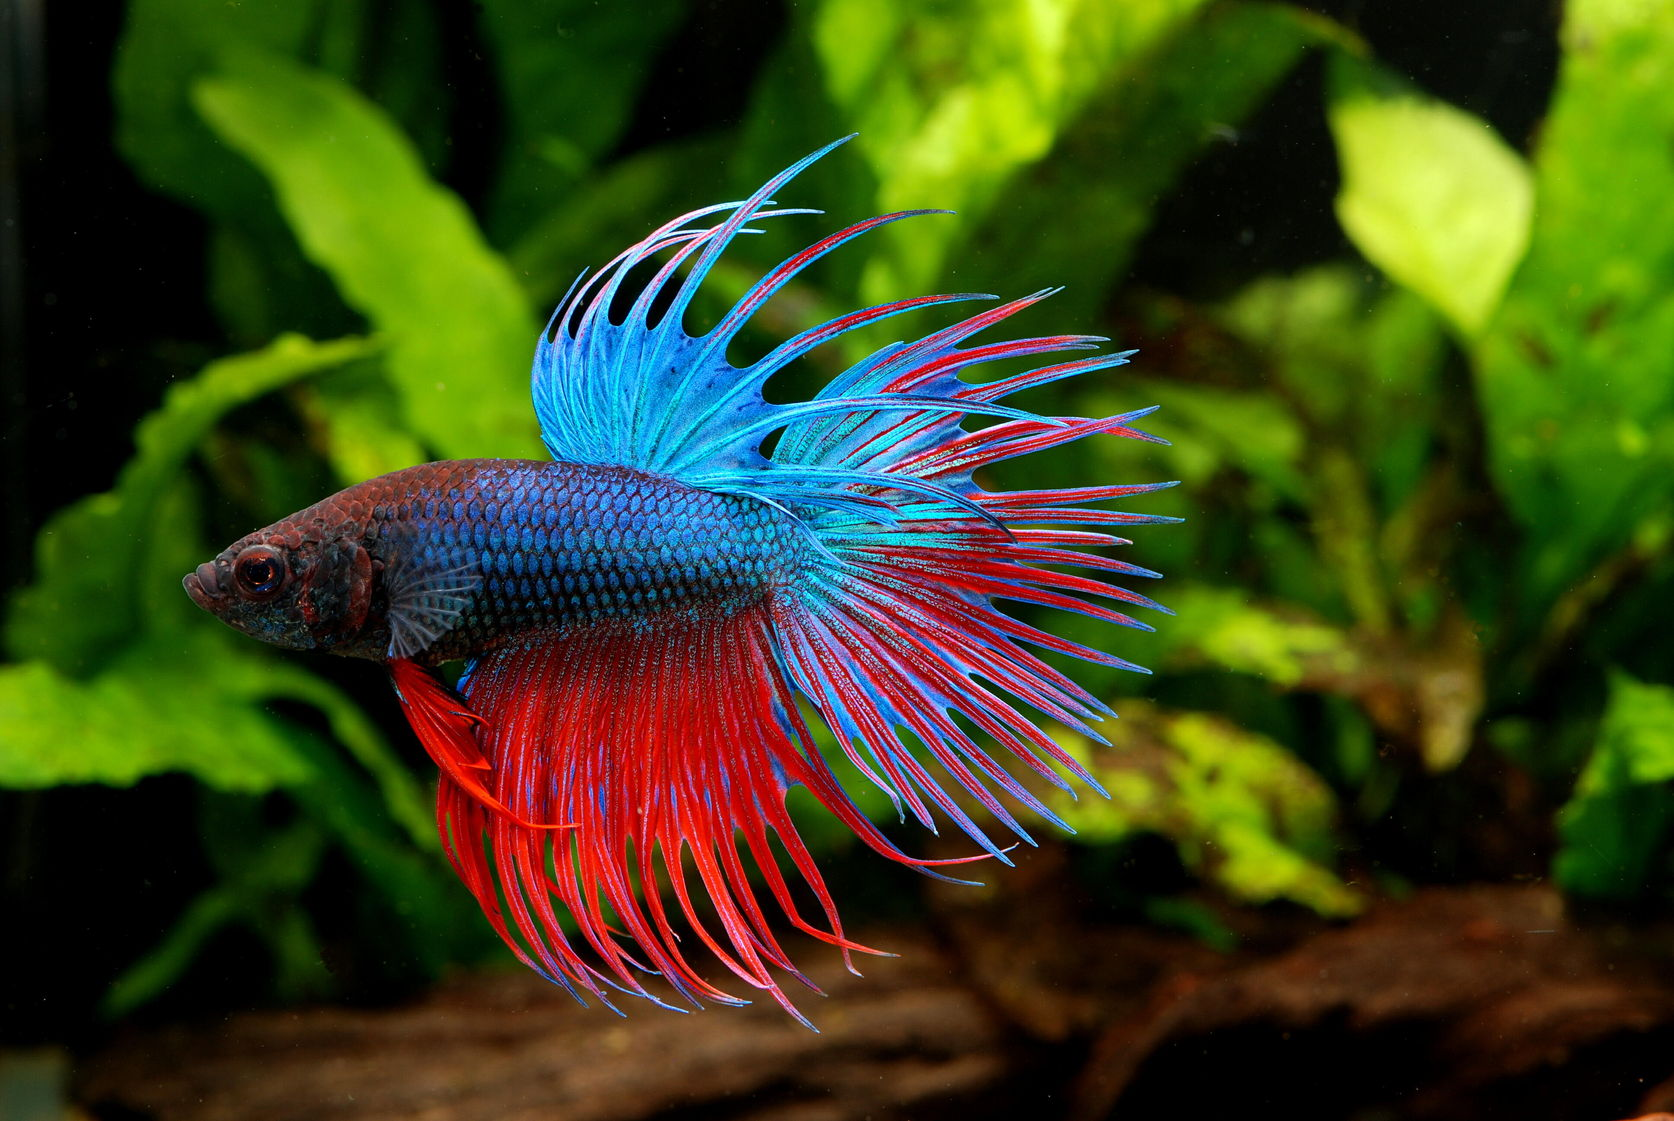 A picture of the very popular Crowntail Betta Fish.